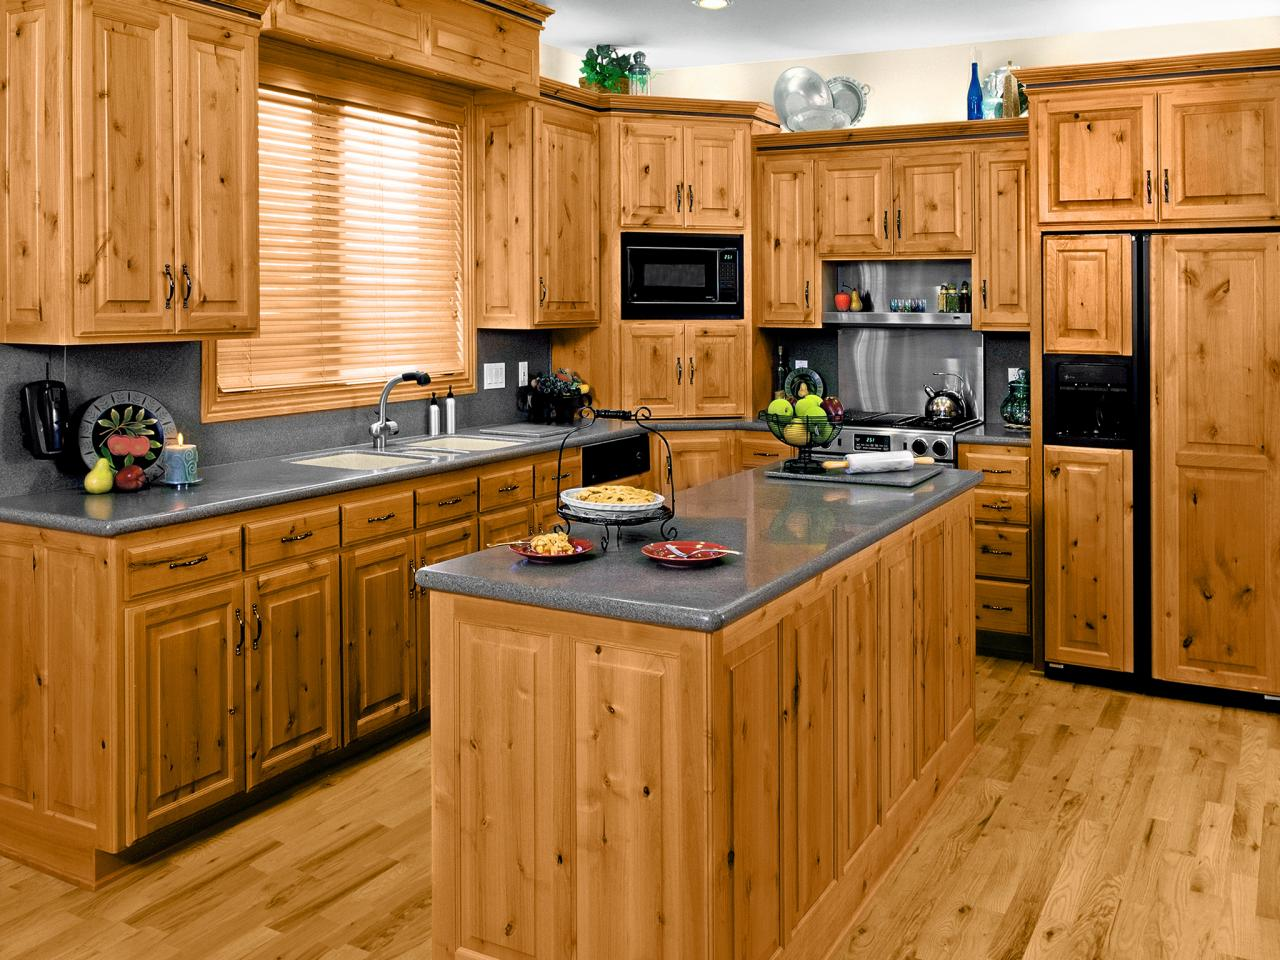 Kitchen cabinet hardware ideas pictures options tips Kitchen cabinet designs